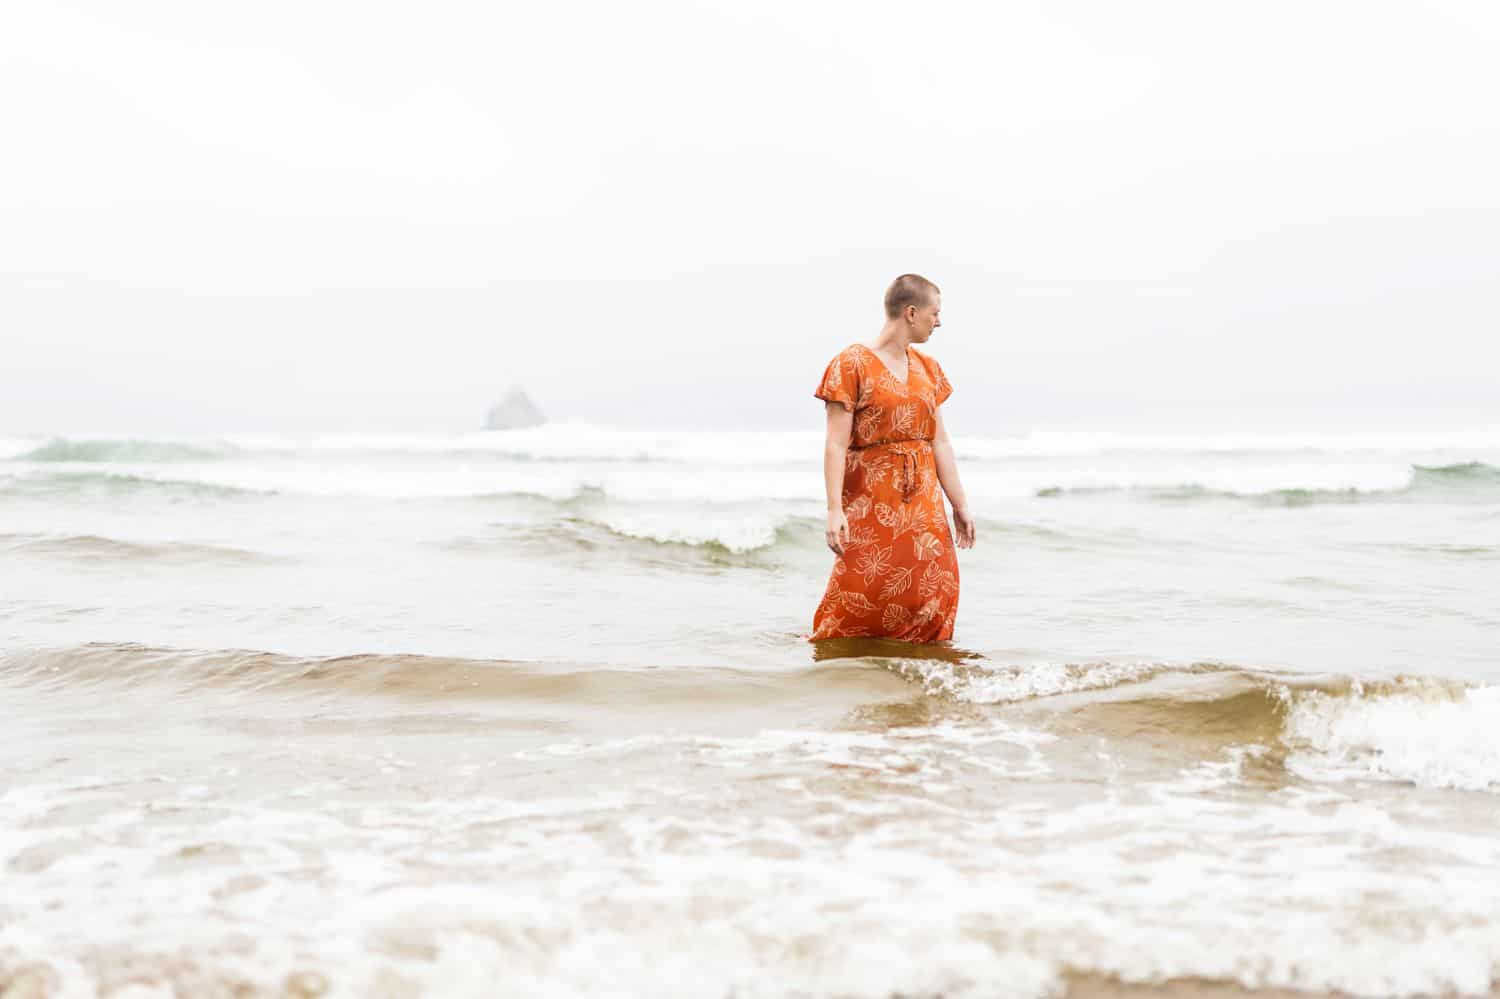 A person with a shaved head wearing a rust-colored dress stands in the ocean waves while photographer Sofia Angelina conducts a healing session that addresses chronic pain.